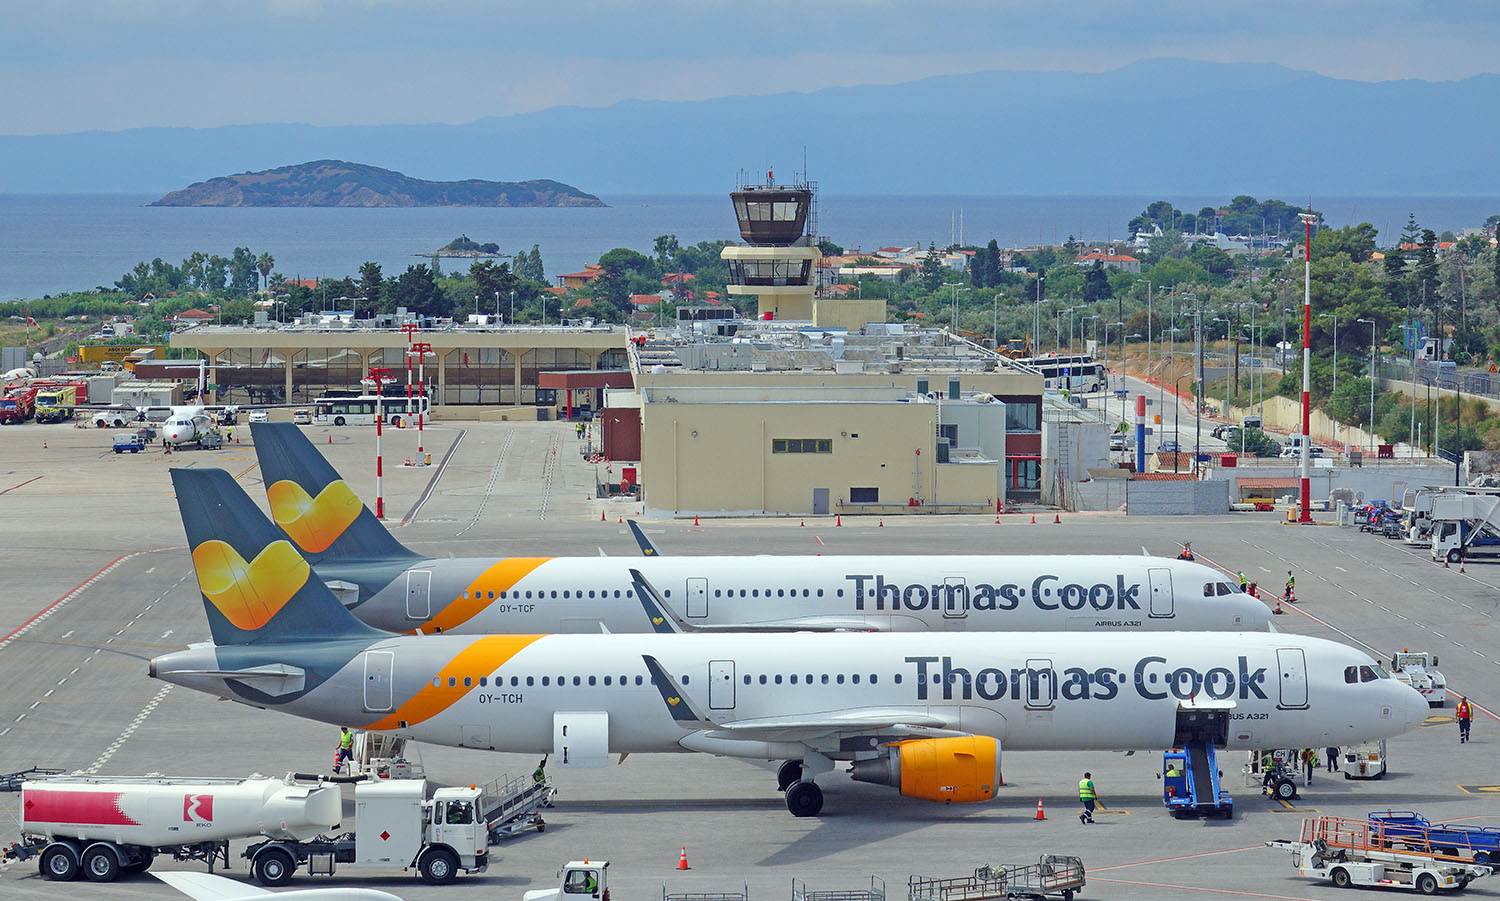 Thomas Cook Rescue Flights at Skiathos